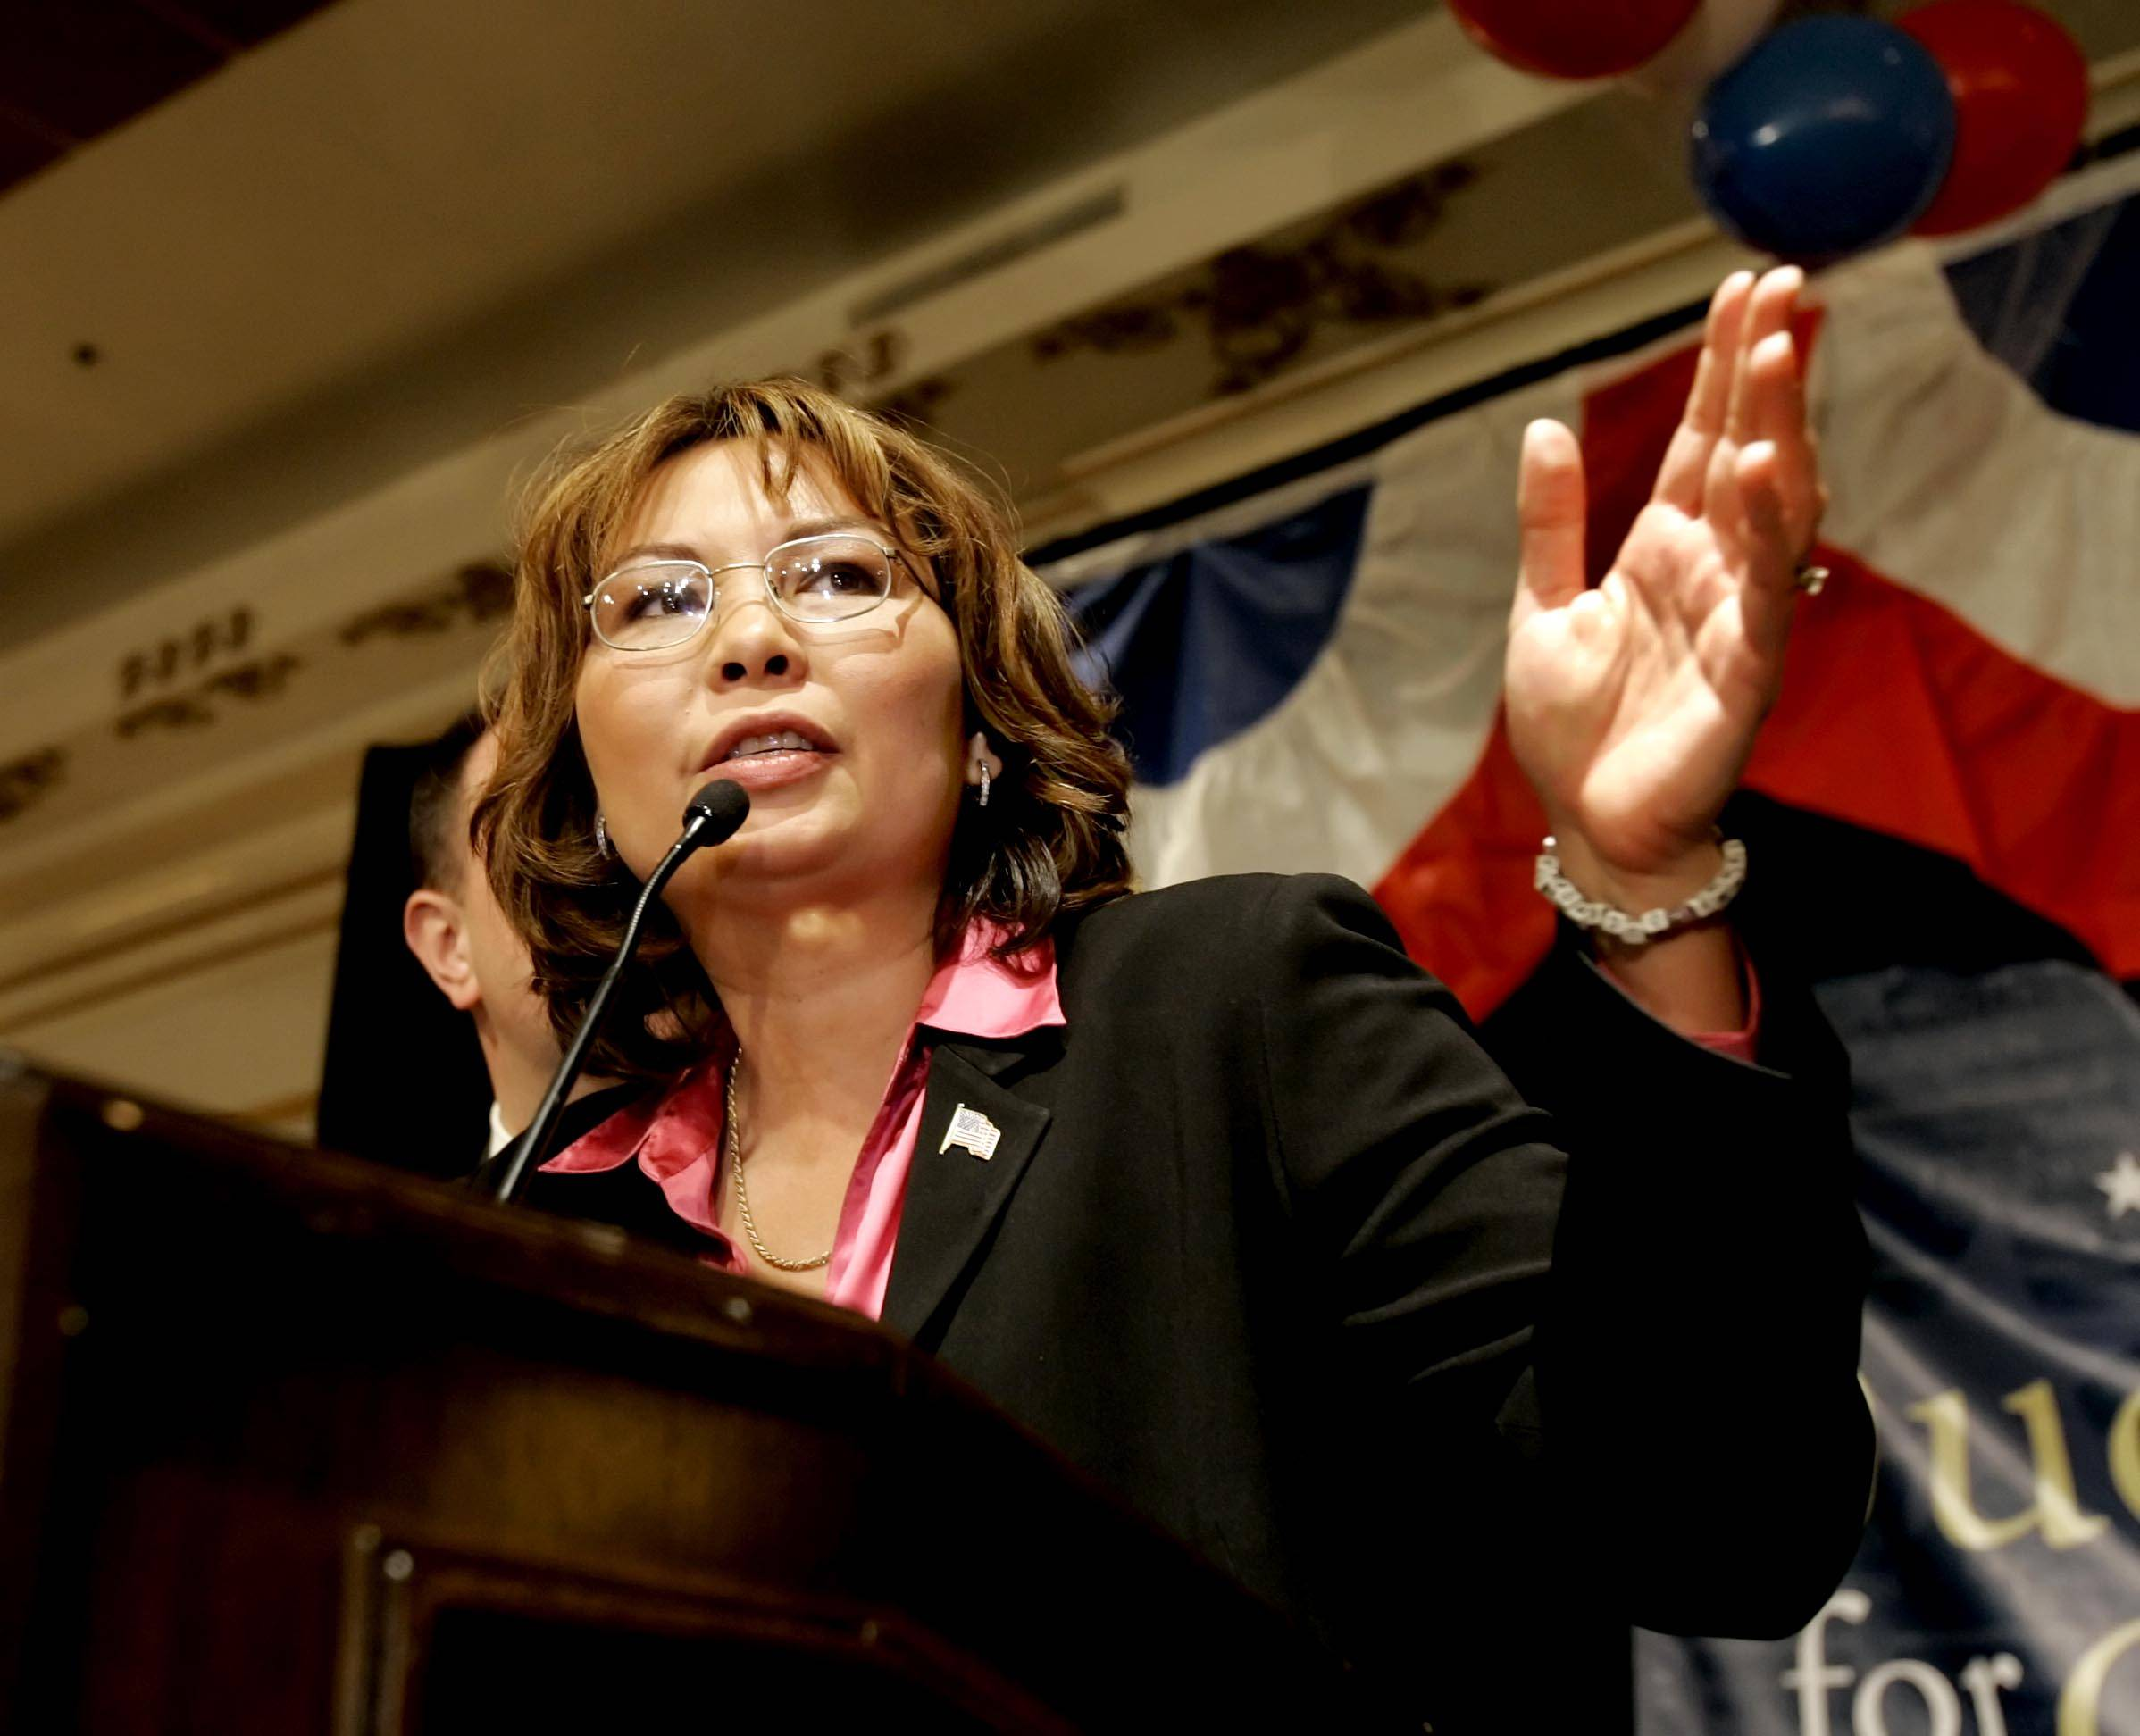 Images: Tammy Duckworth's 2006 6th Congressional District Campaign